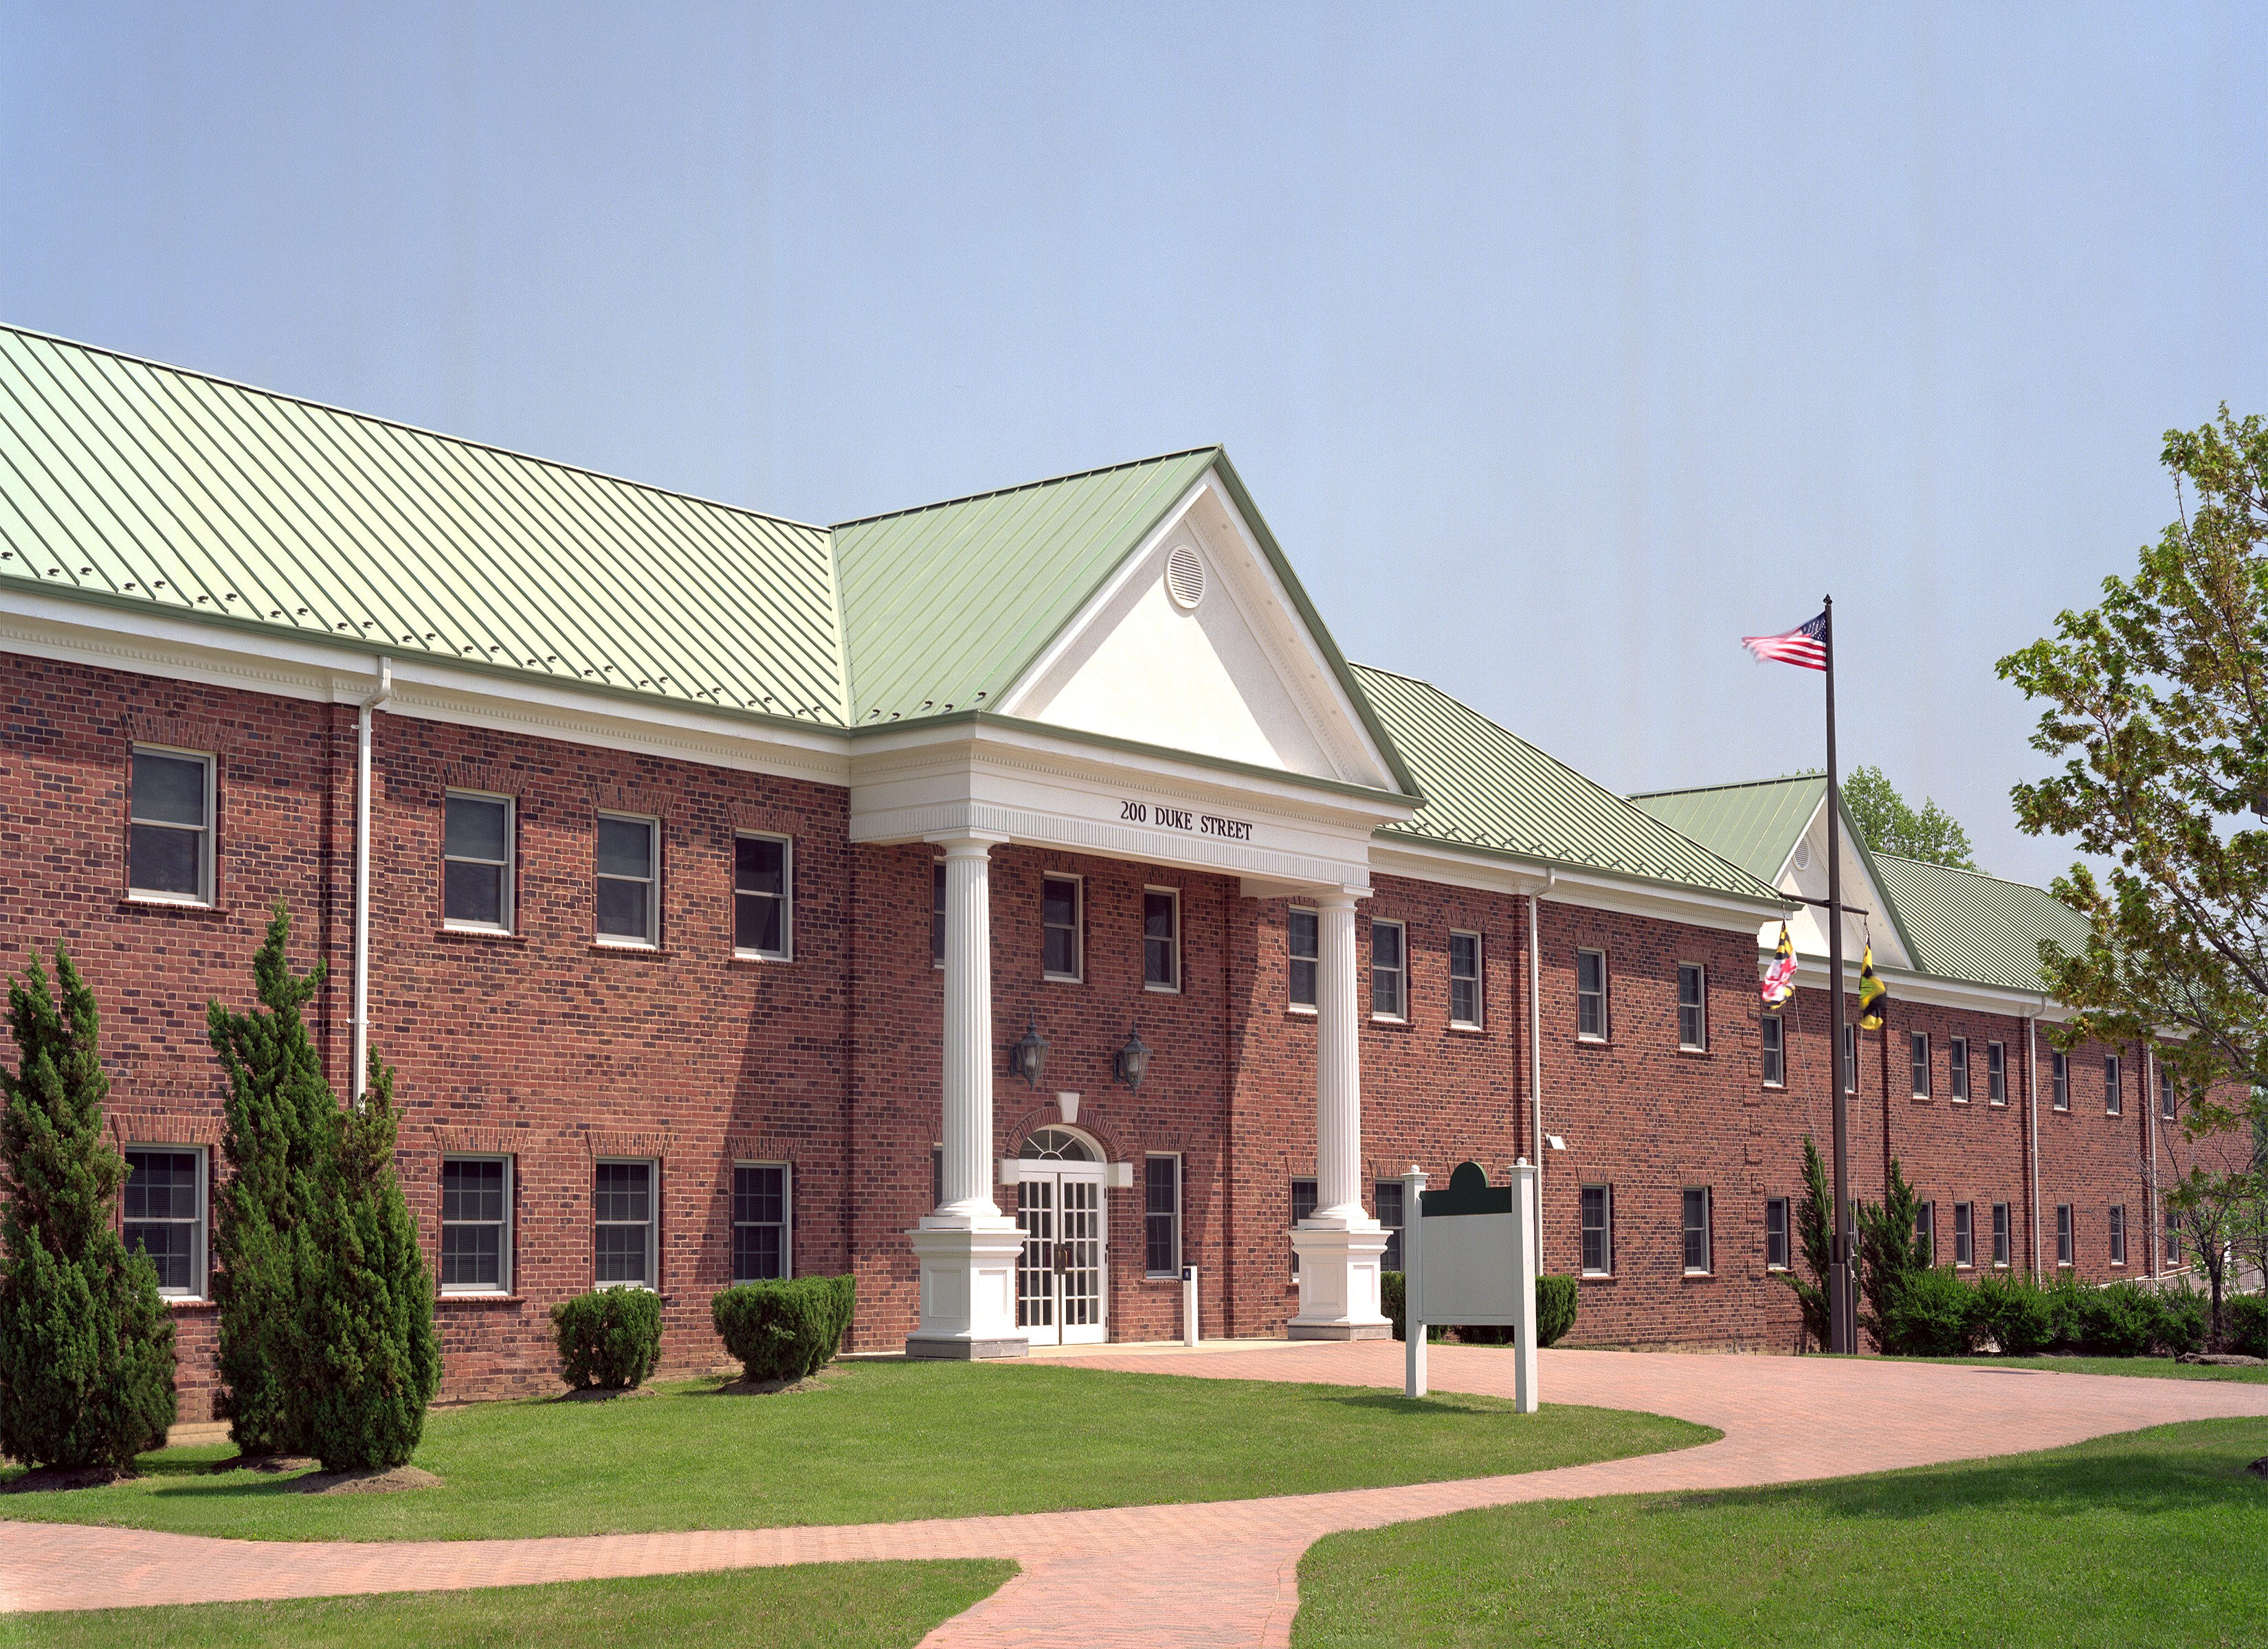 Calvert County District Court